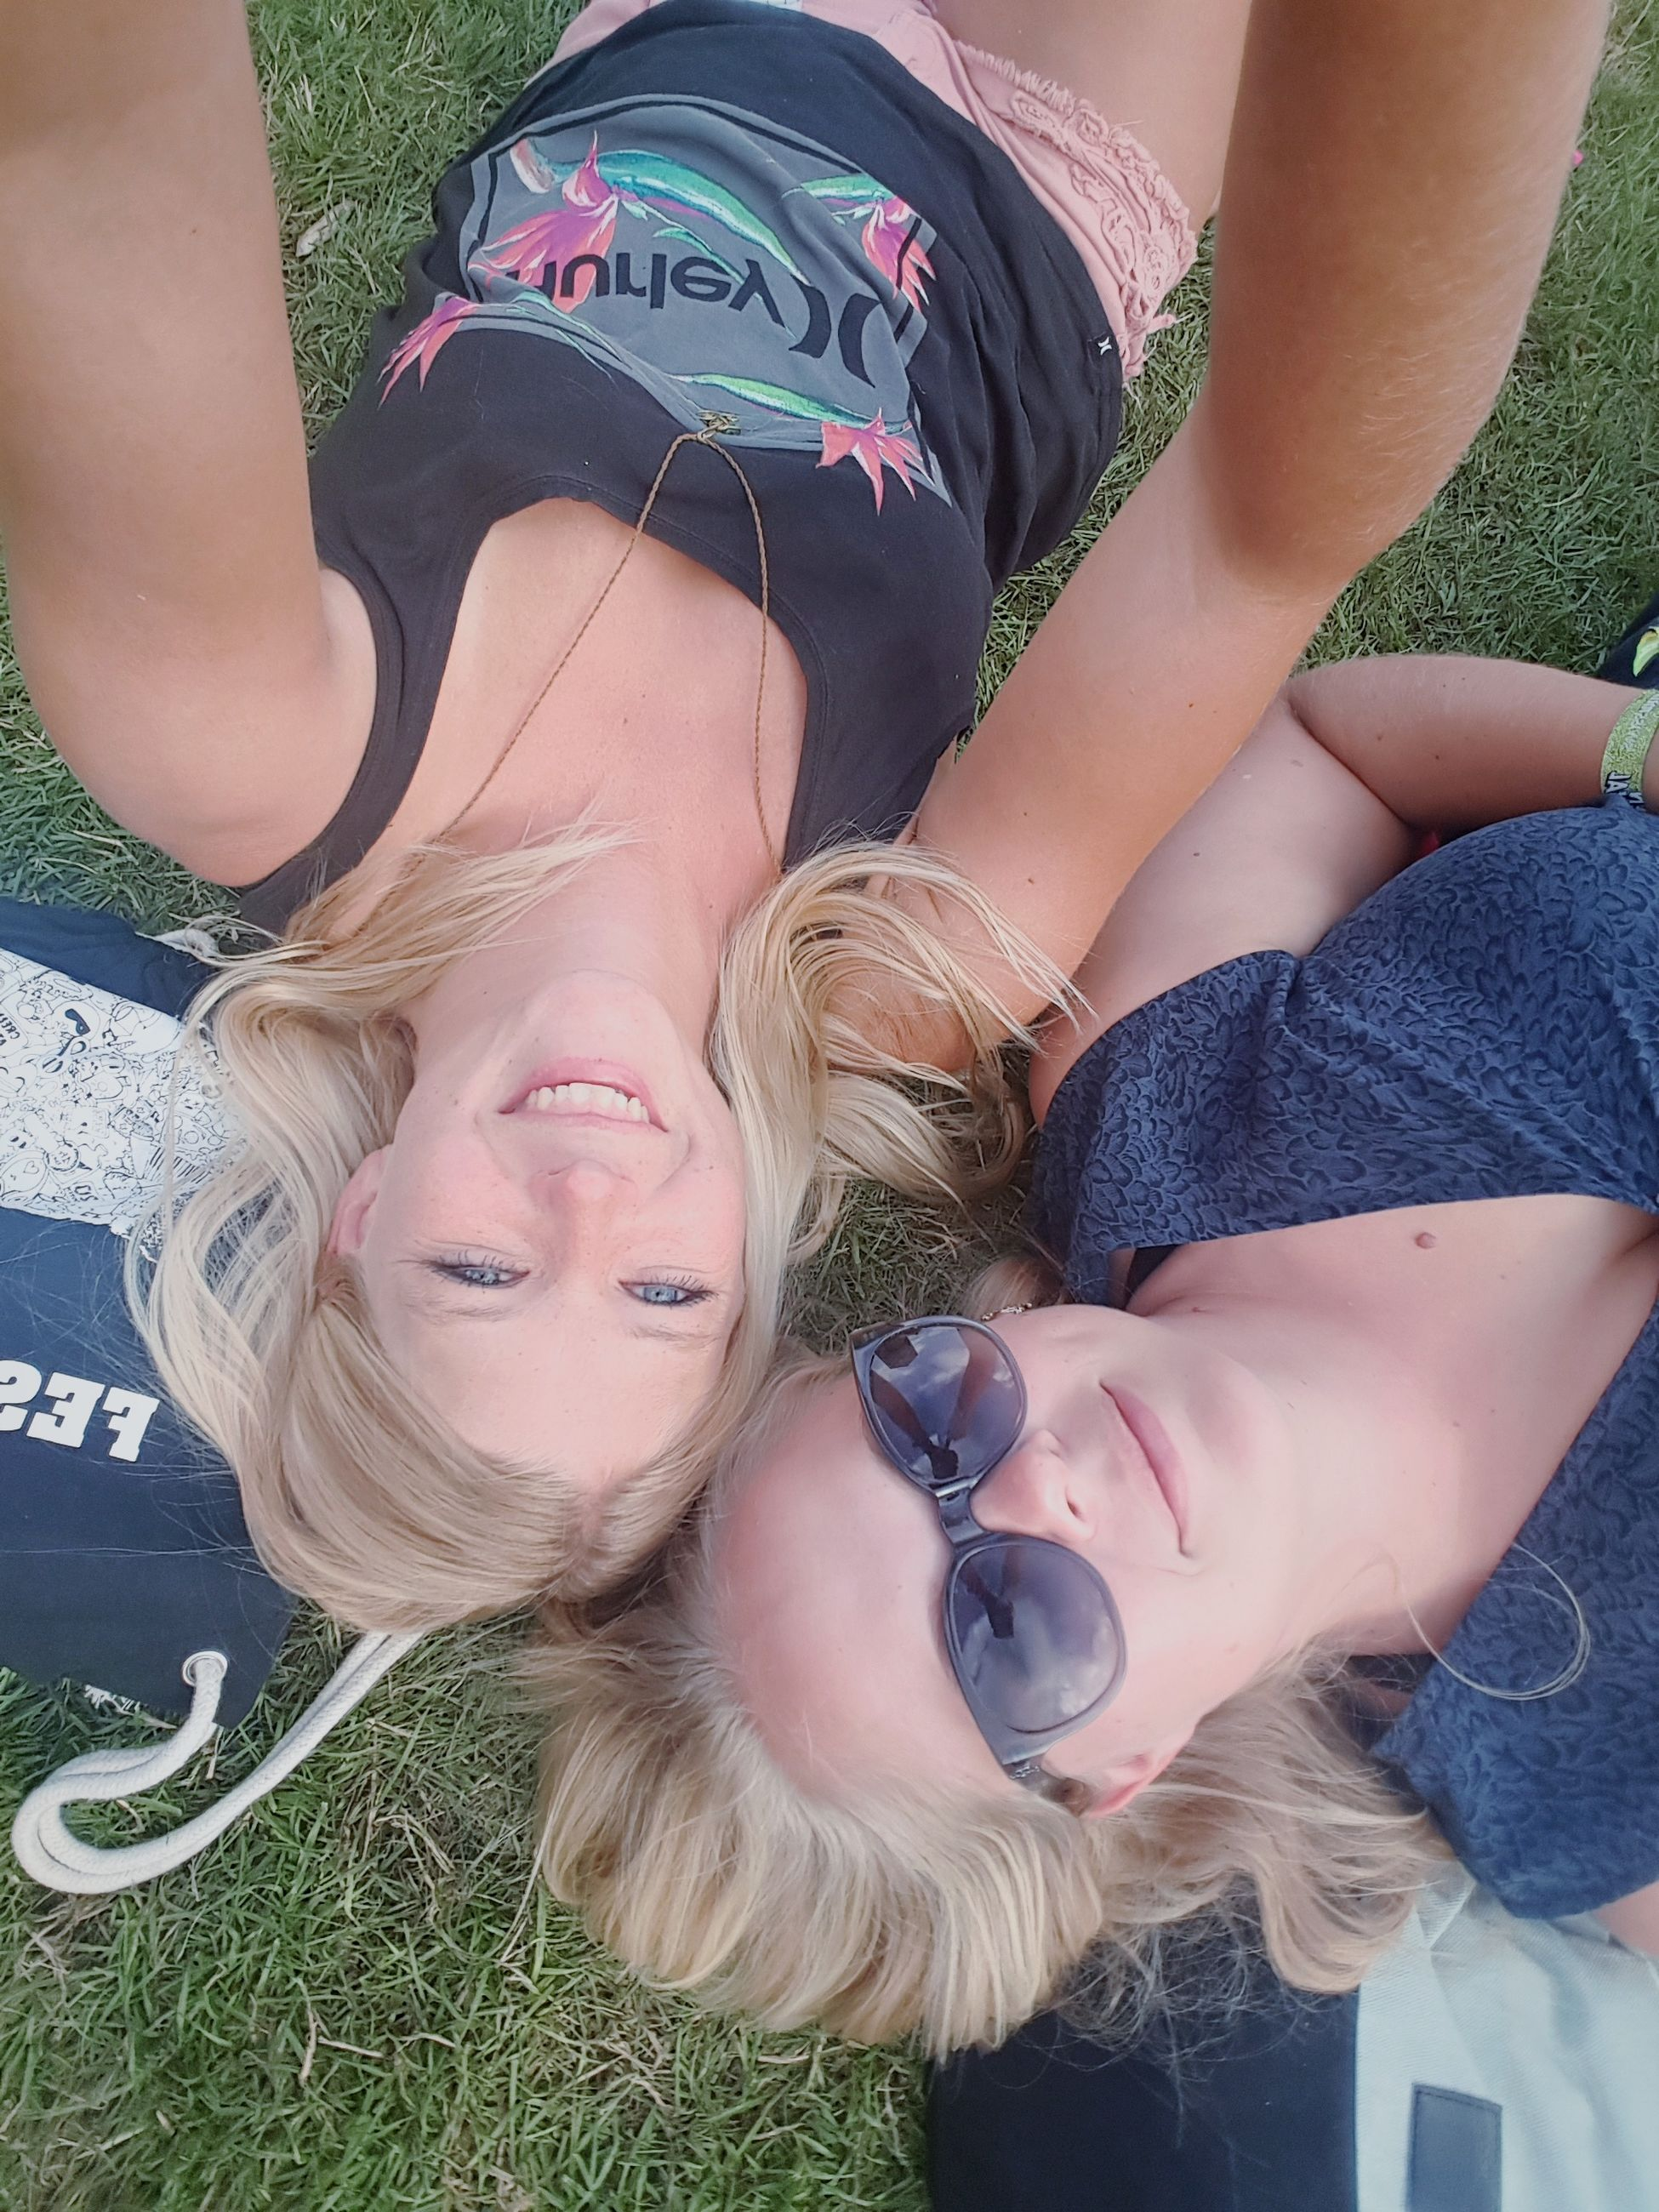 real people, leisure activity, childhood, togetherness, casual clothing, lifestyles, girls, happiness, high angle view, smiling, lying down, lying on back, elementary age, day, mother, outdoors, love, bonding, sibling, two people, looking at camera, young women, grass, portrait, boys, young adult, blond hair, close-up